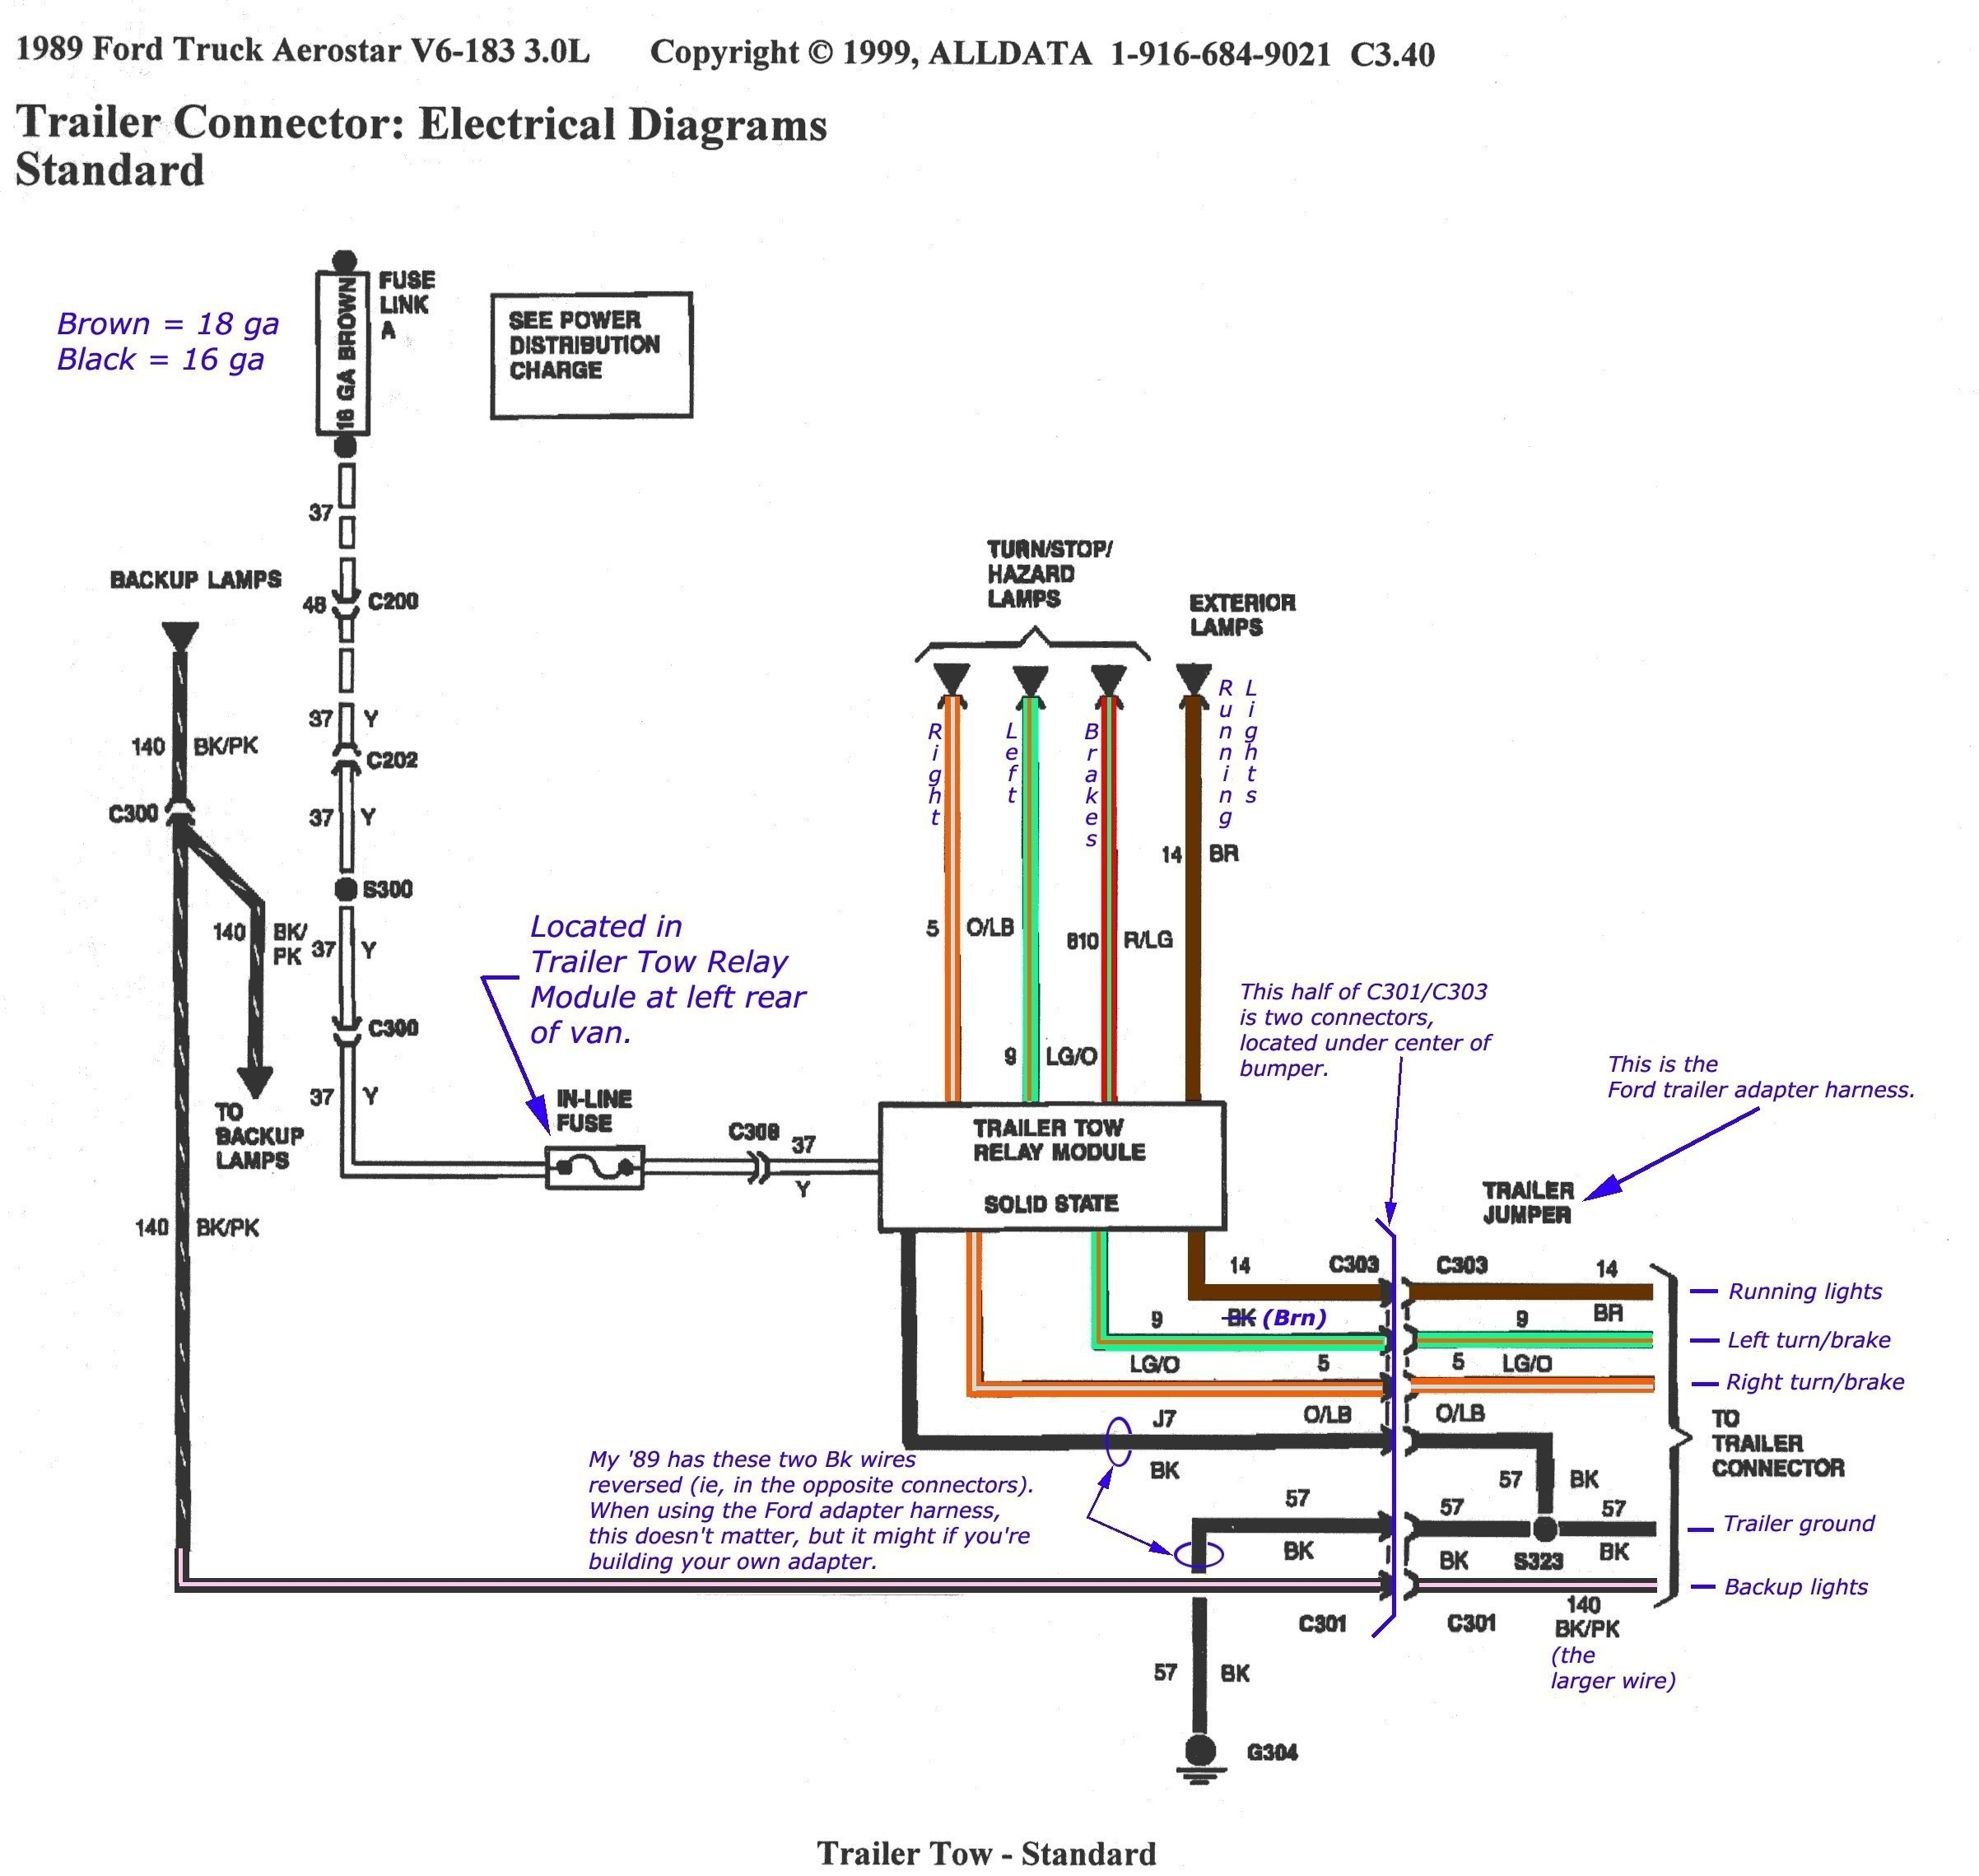 semi trailer wiring schematic Collection-Trailer Wiring Diagram Refrence Wiring Diagram Semi Trailer Plug Refrence Wiring Diagrams for 15-e